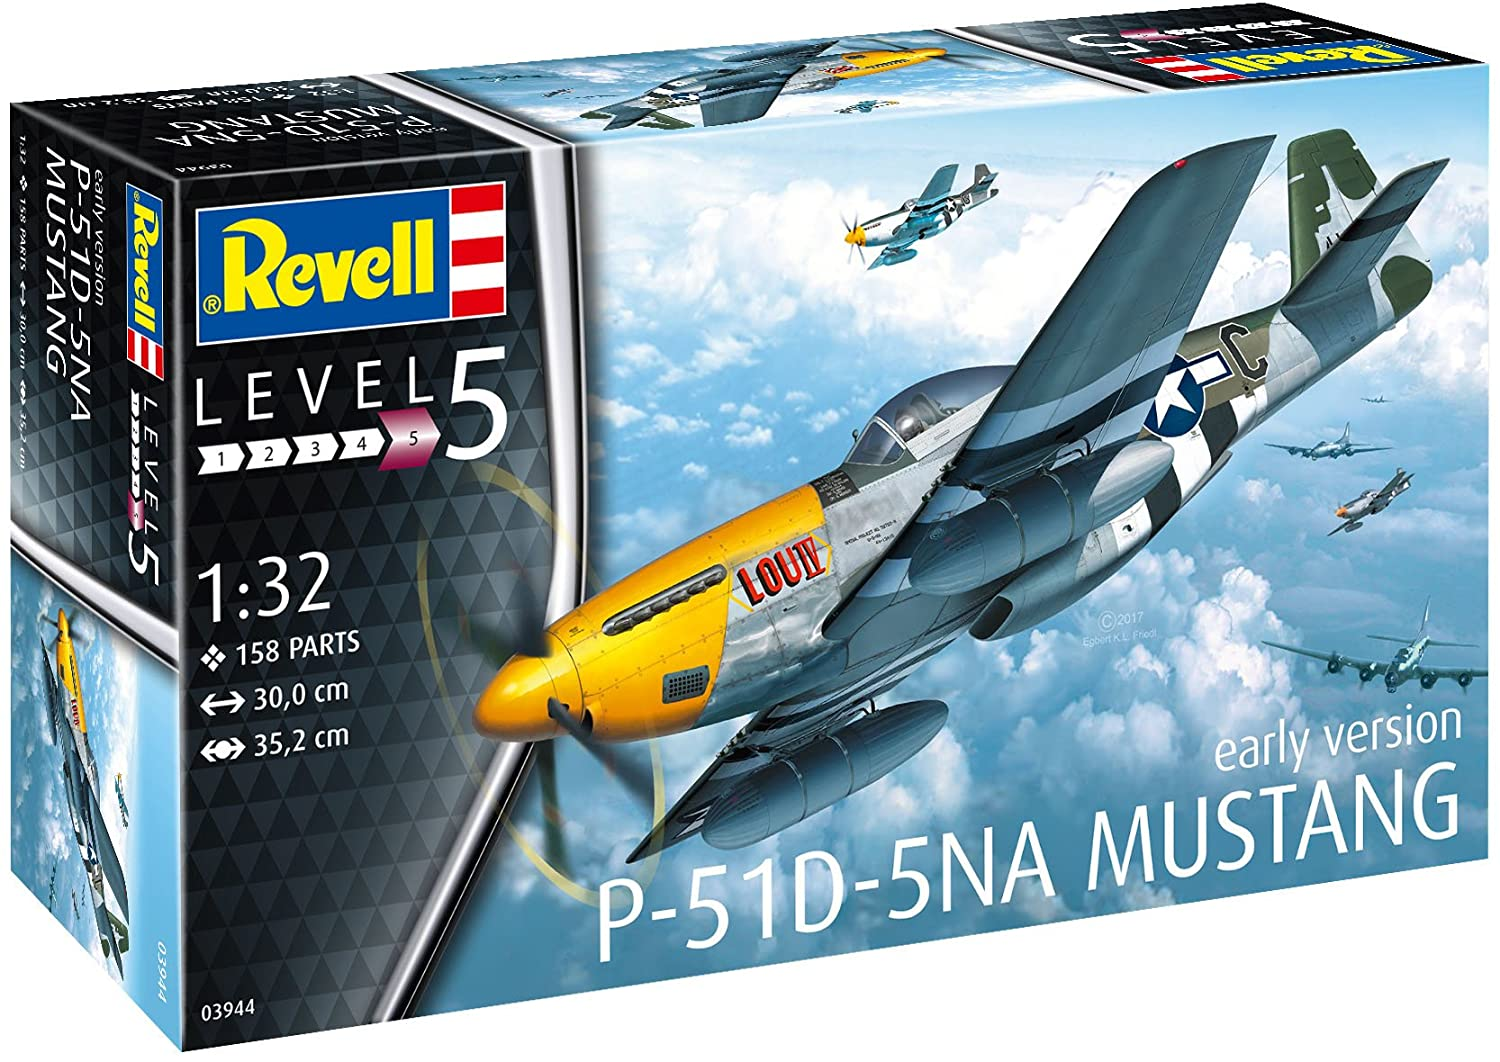 P-51D-5NA Mustang (early version) - 1/32 - Revell 03944  - BLIMPS COMÉRCIO ELETRÔNICO